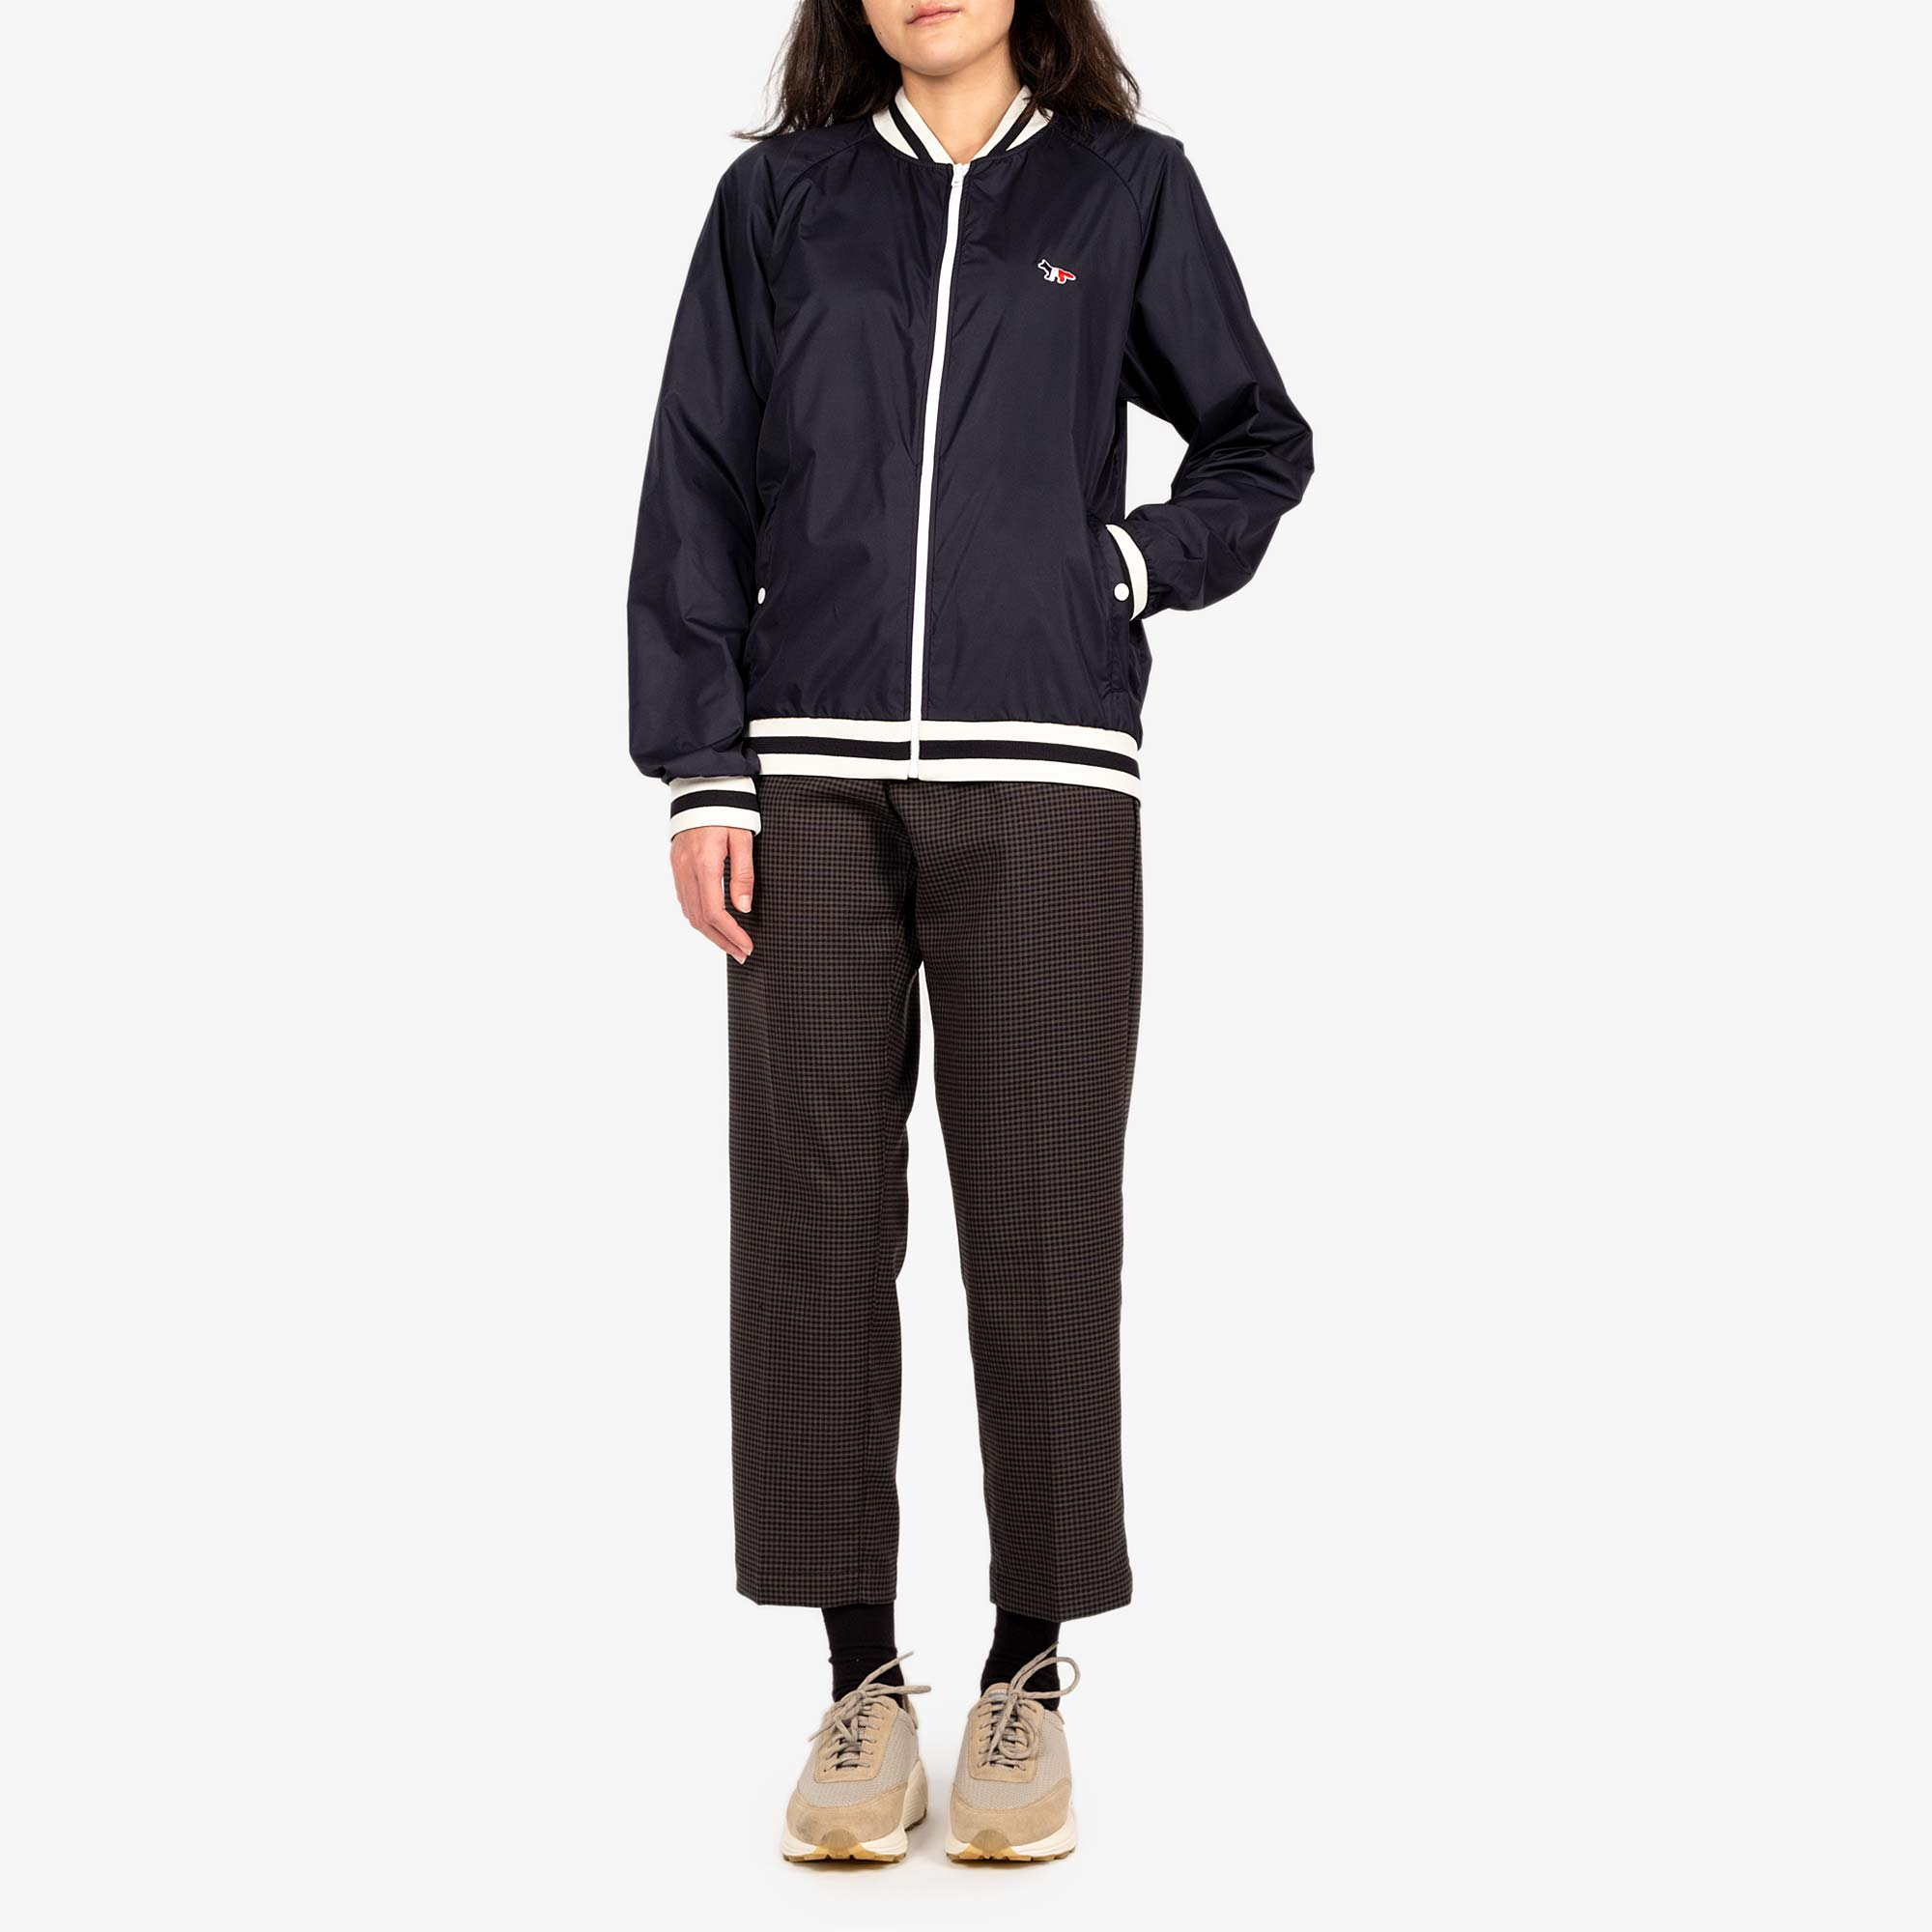 Maison Kitsune Womens Windbreaker - Navy 4